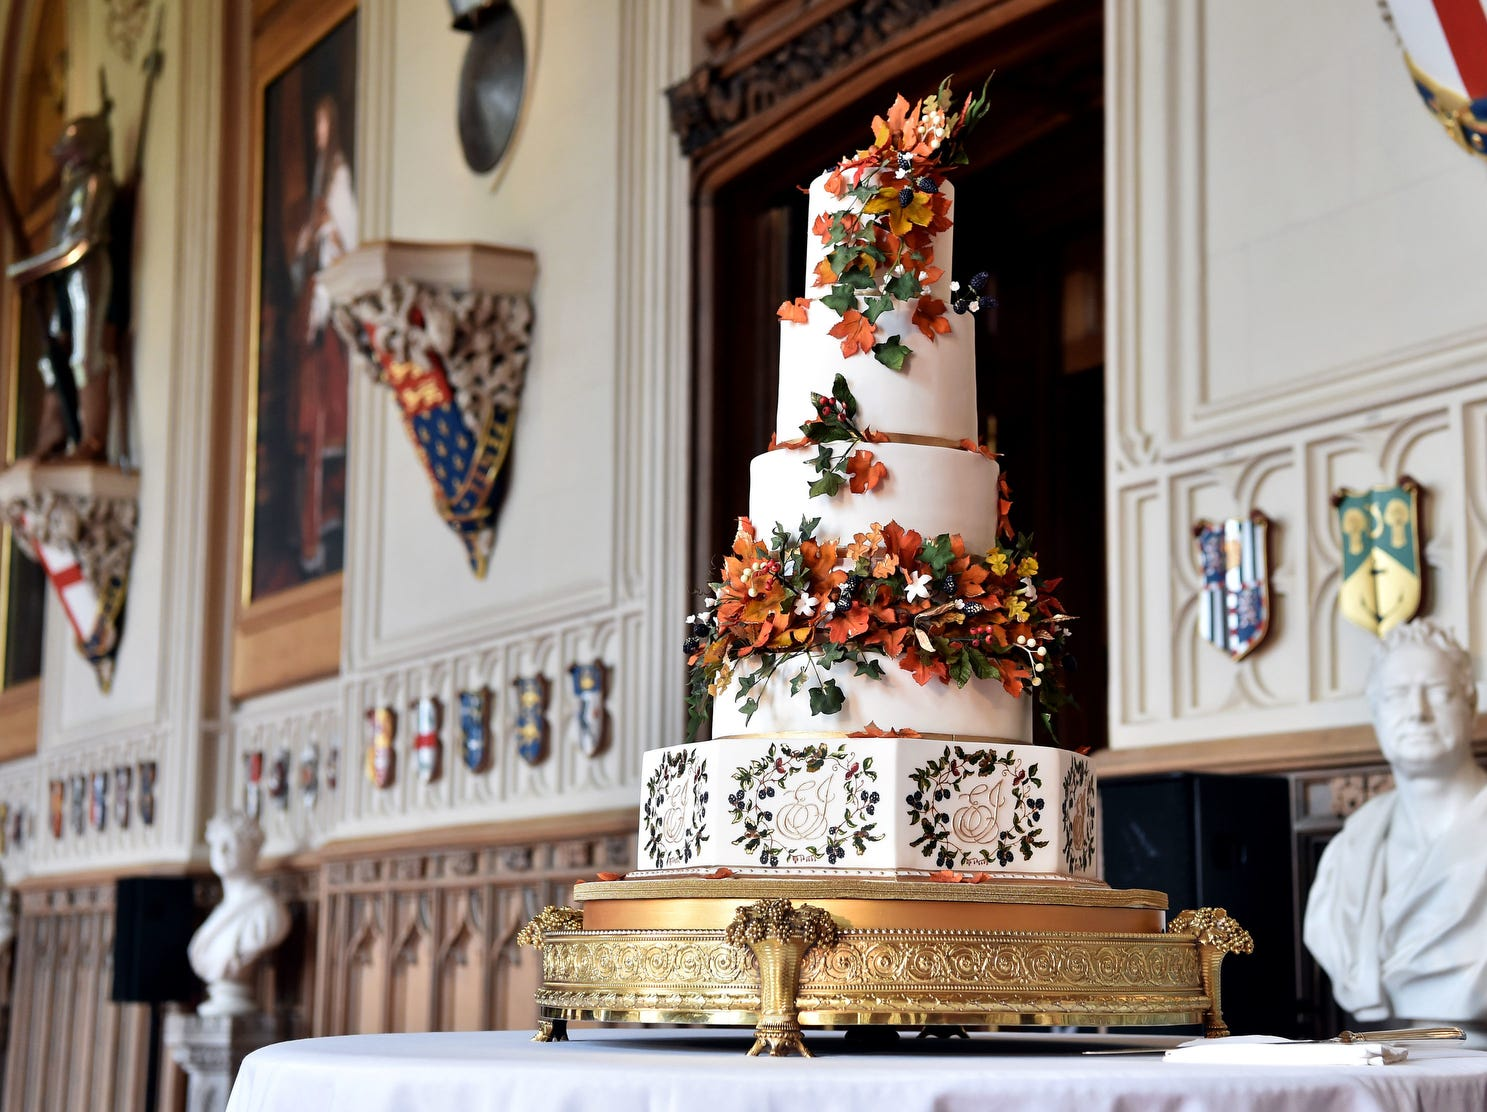 The wedding cake, which was created Sophie Cabot for the wedding of Princess Eugenie of York and Mr. Jack Brooksbank pictured in St. George's Hall at Windsor Castle.